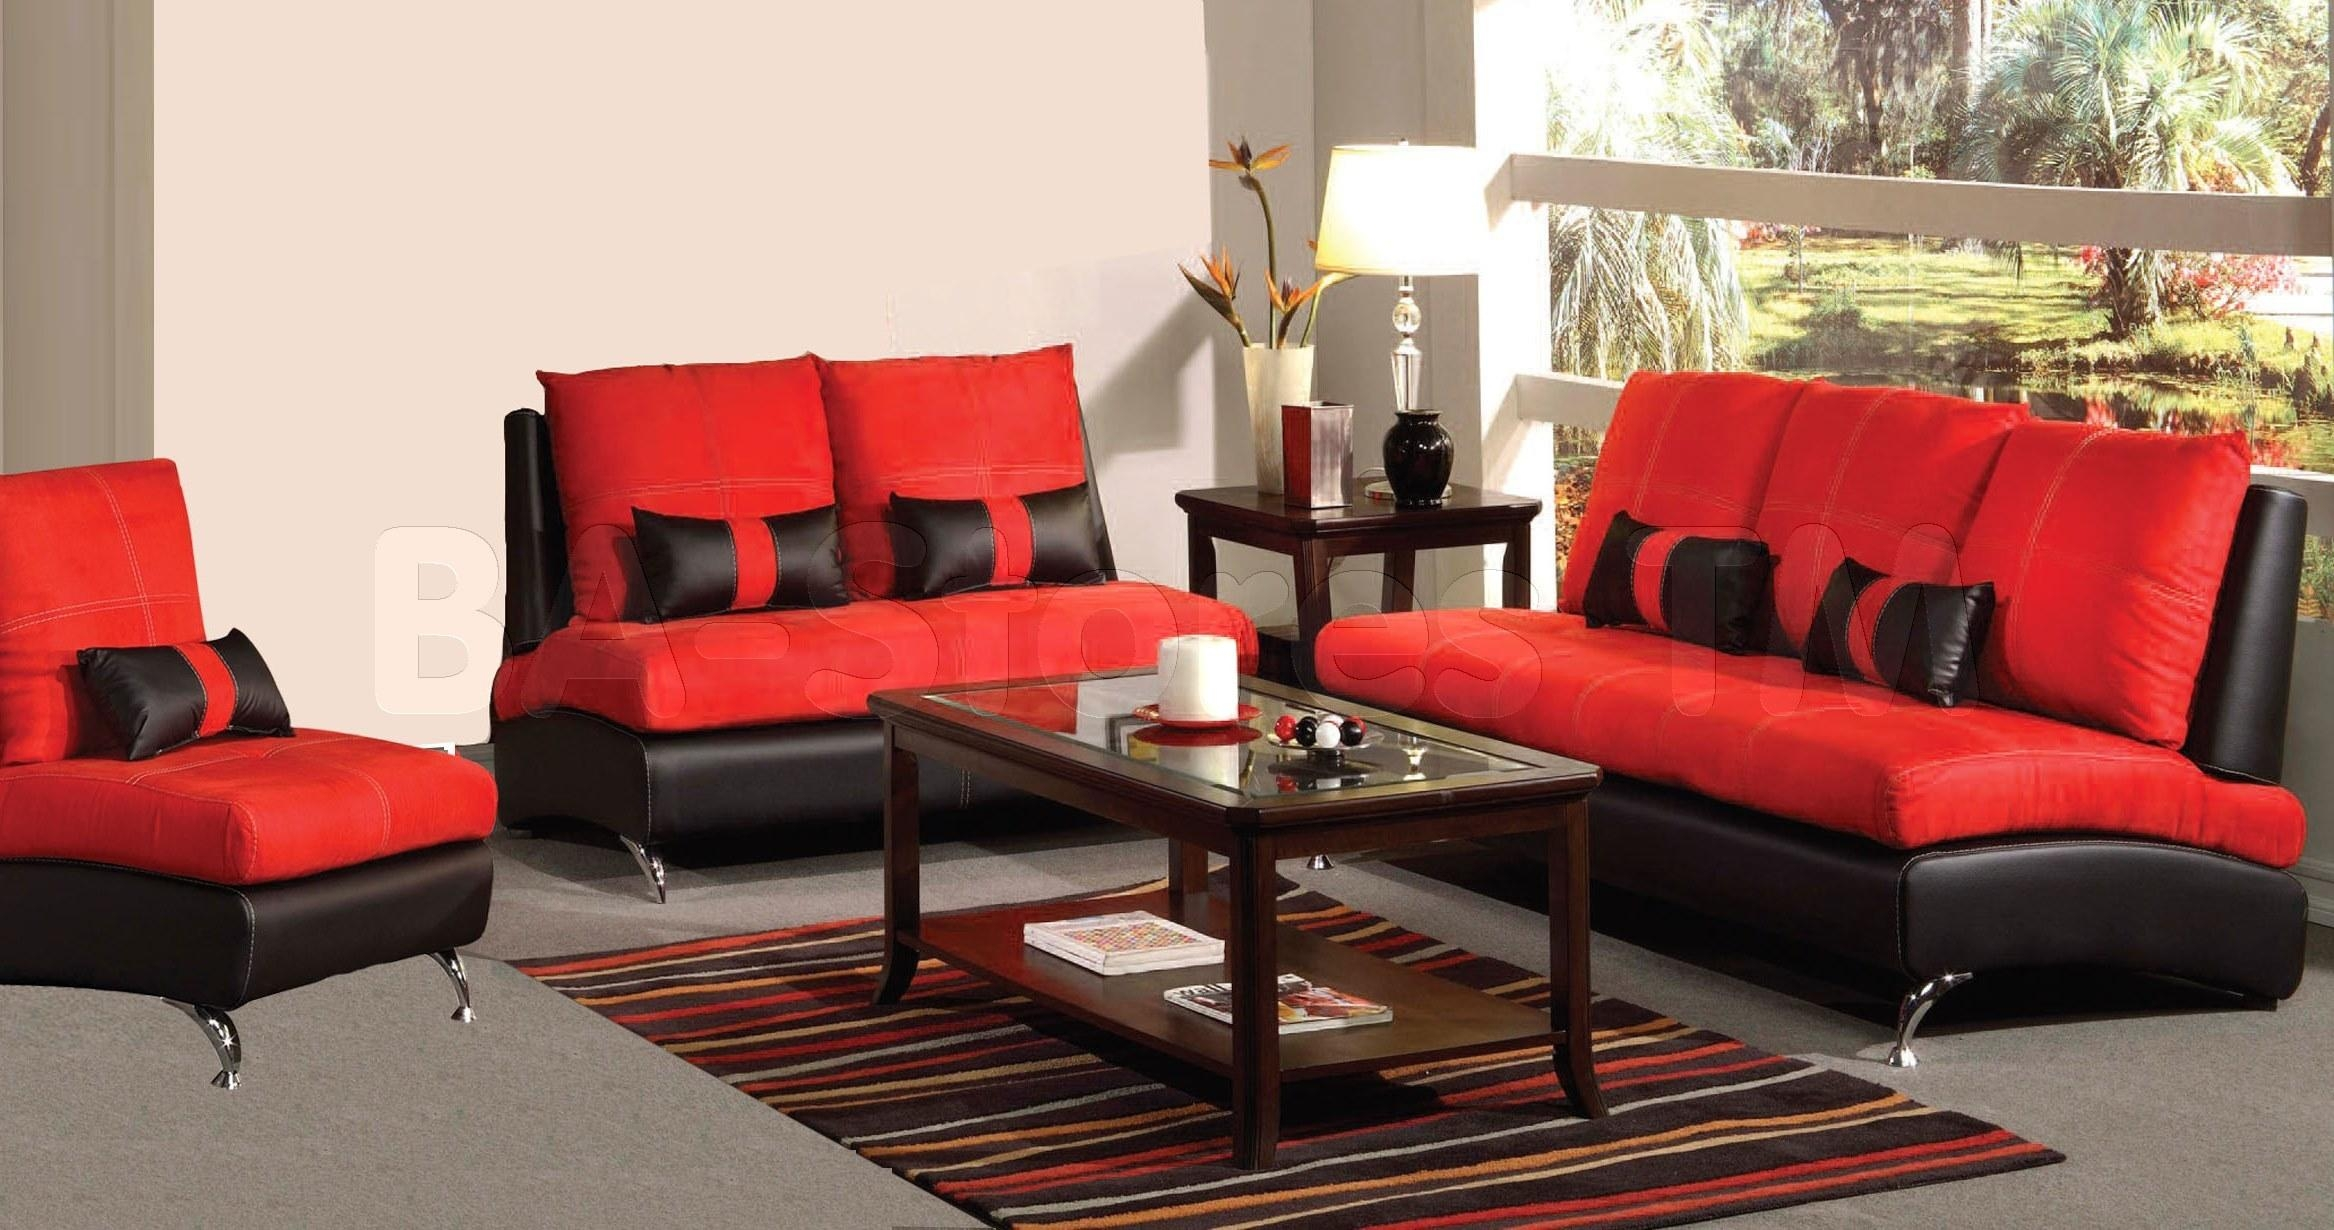 Black And Red Sofa Set | Sofa Gallery | Kengire Pertaining To Black And Red Sofas (View 11 of 20)